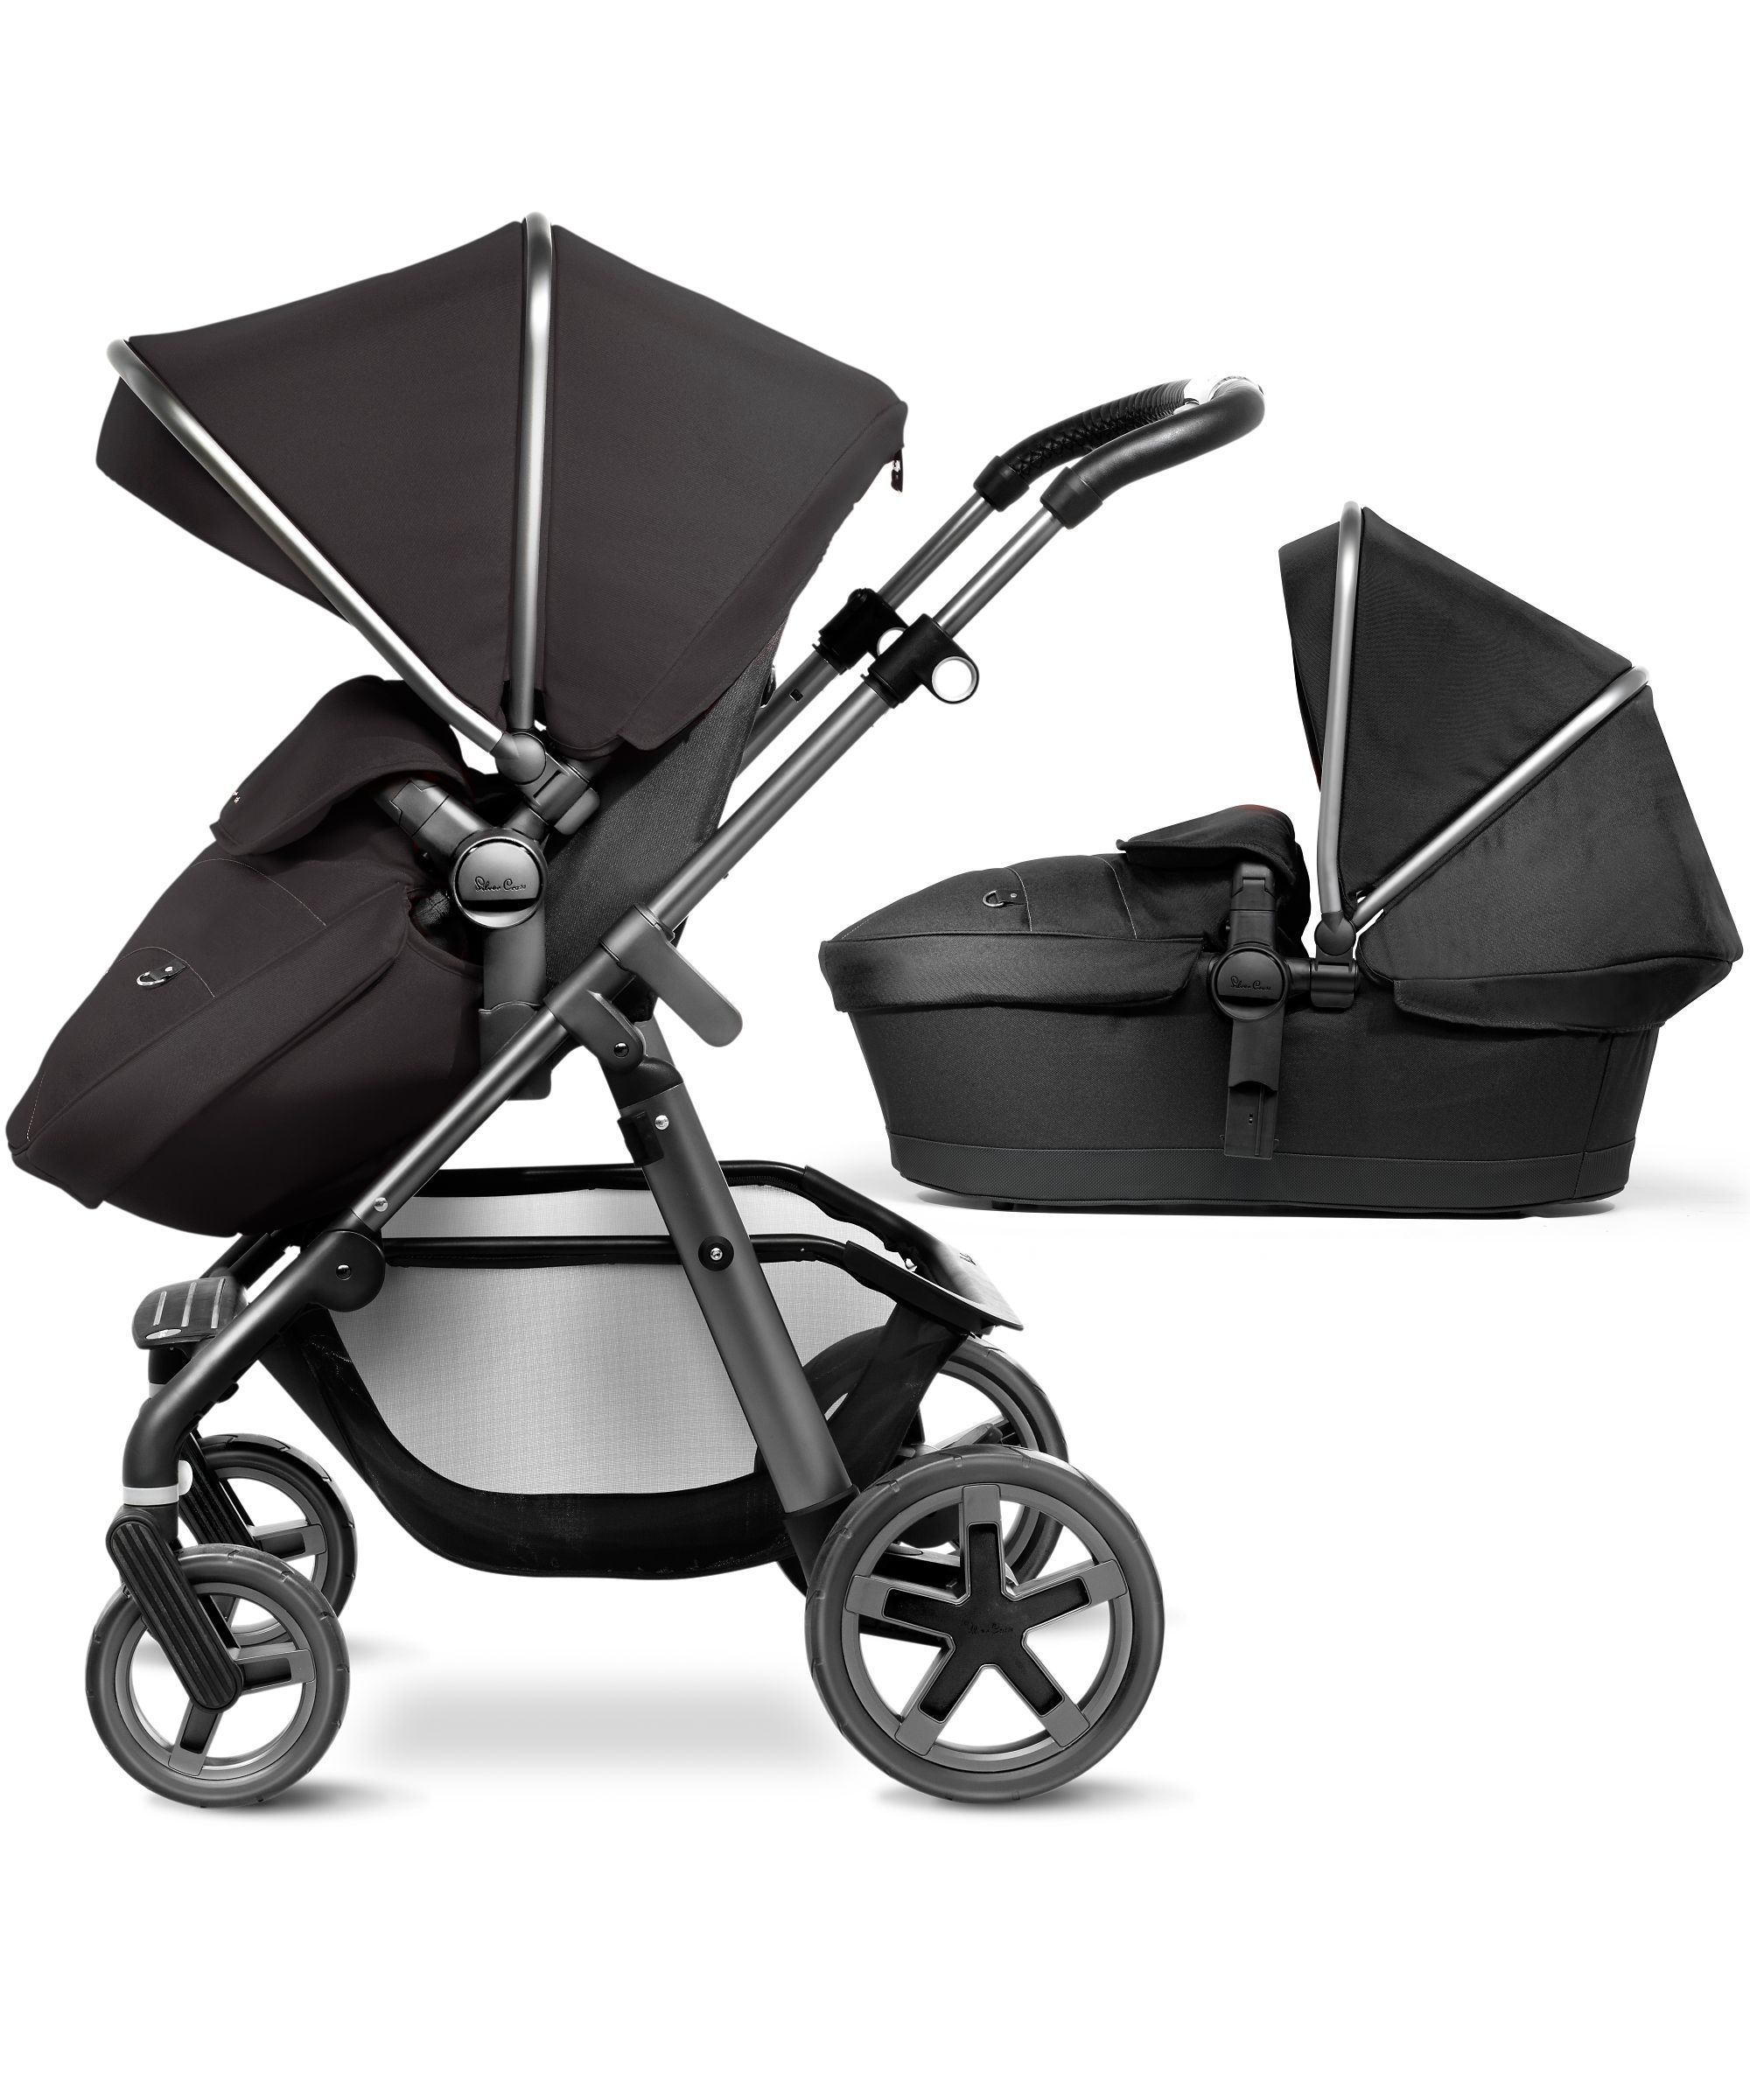 nursery bedding Silver cross pioneer, Baby strollers